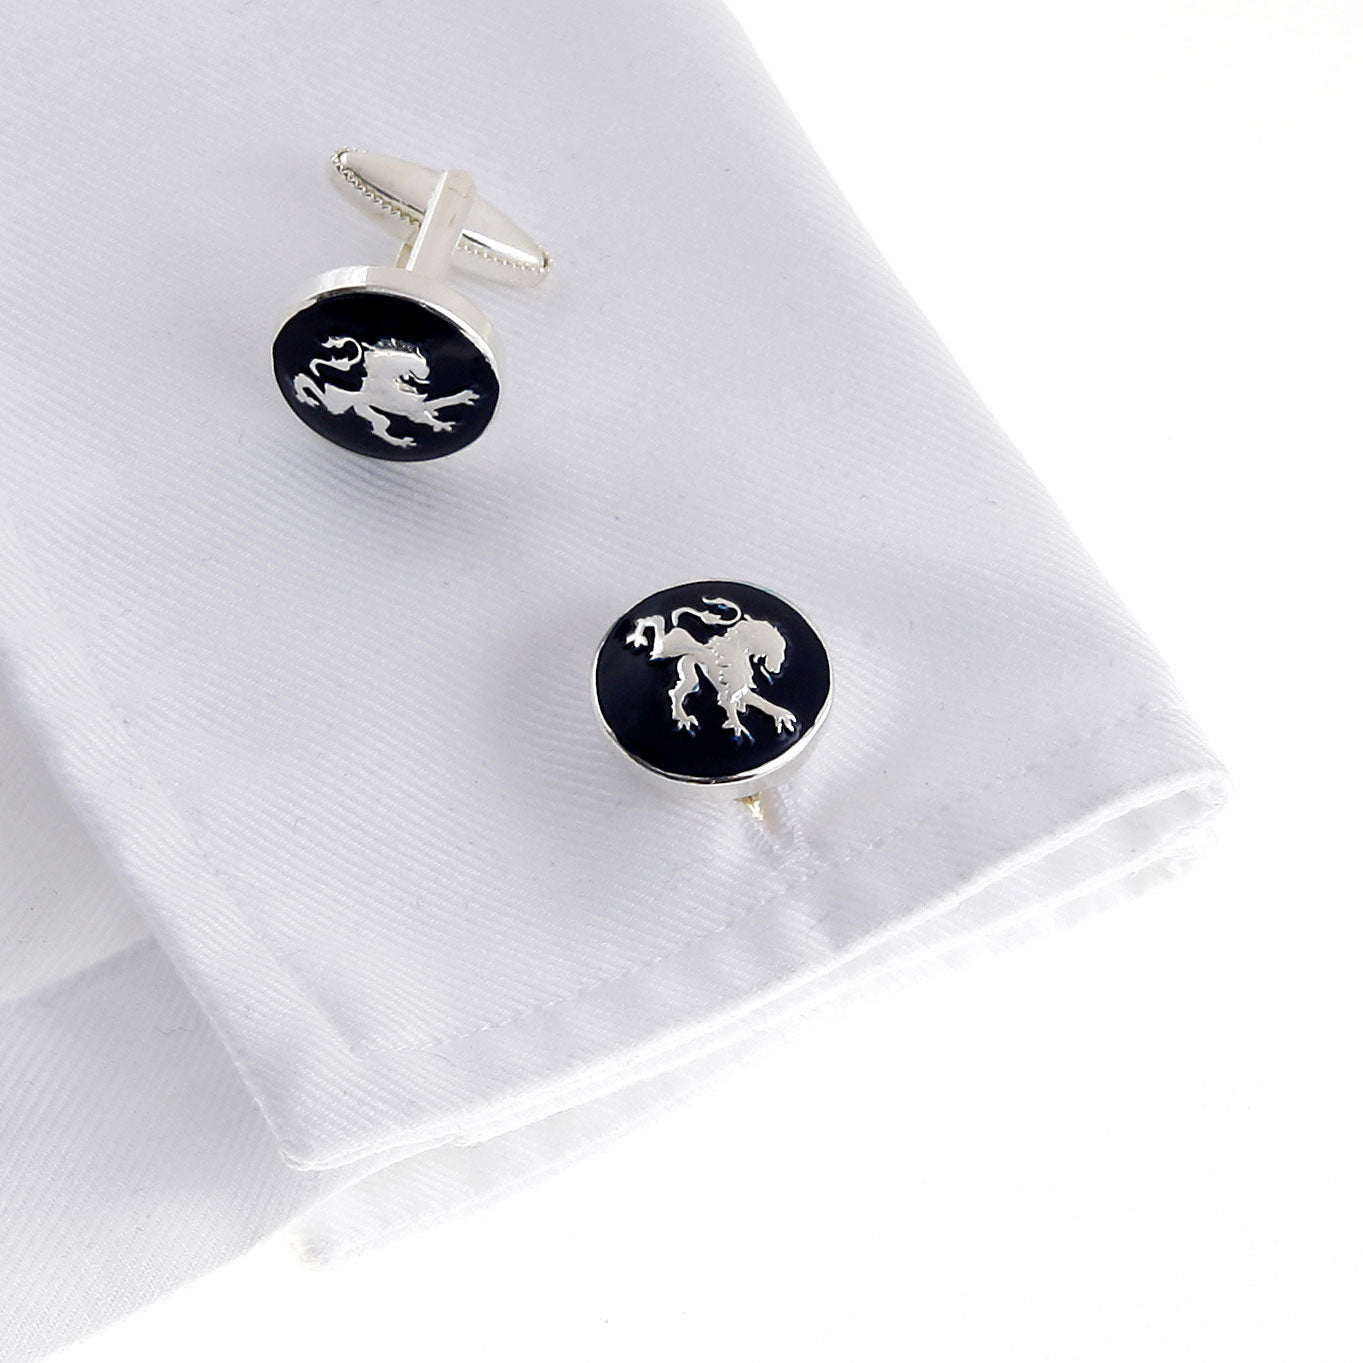 The English Lion Cufflinks